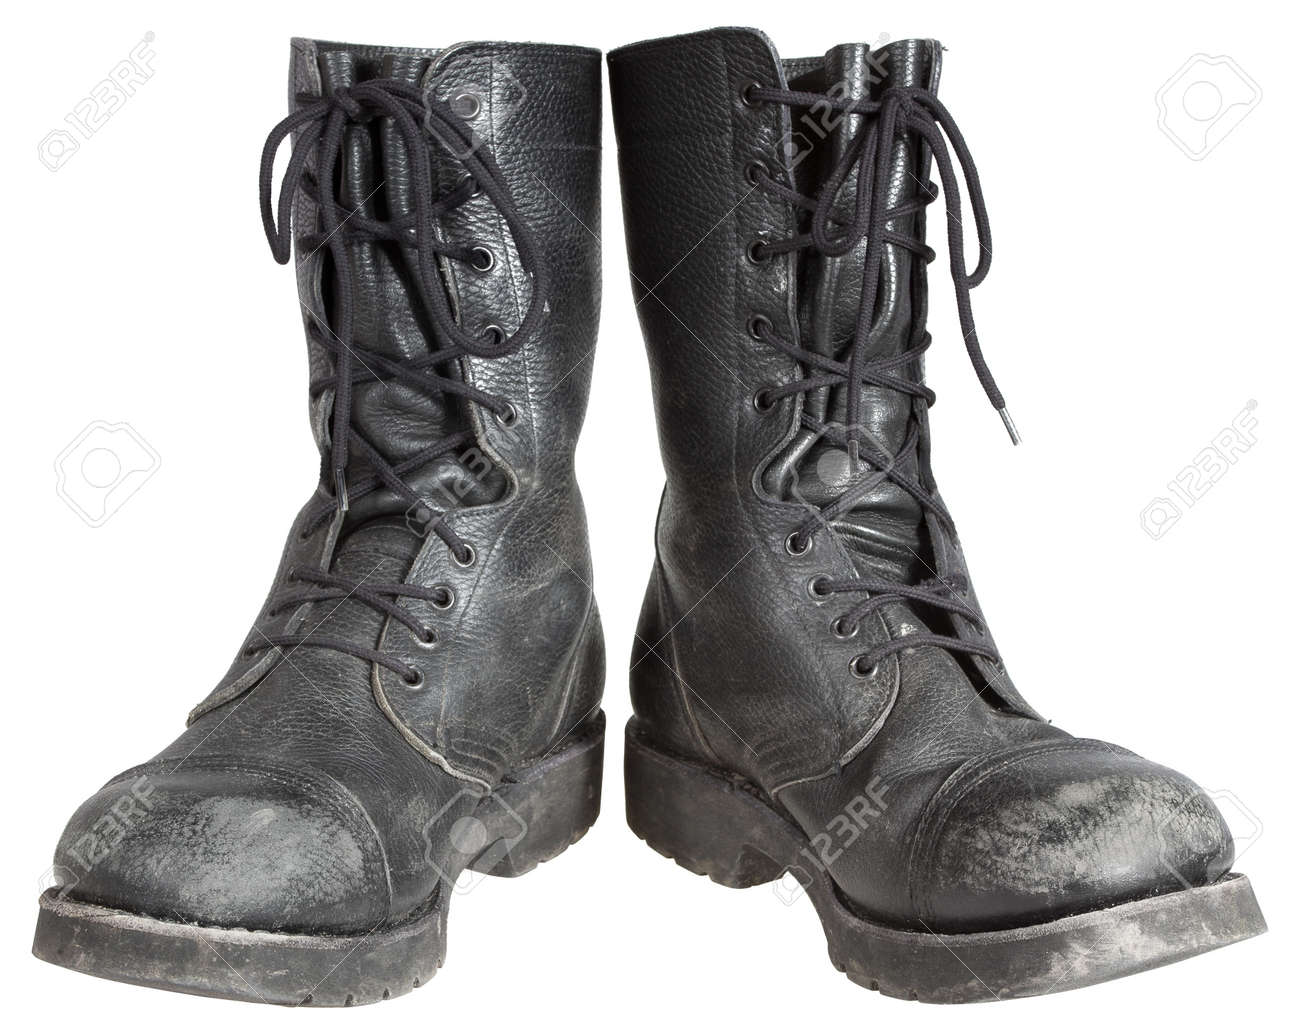 Combat Boots Stock Photos & Pictures. Royalty Free Combat Boots ...